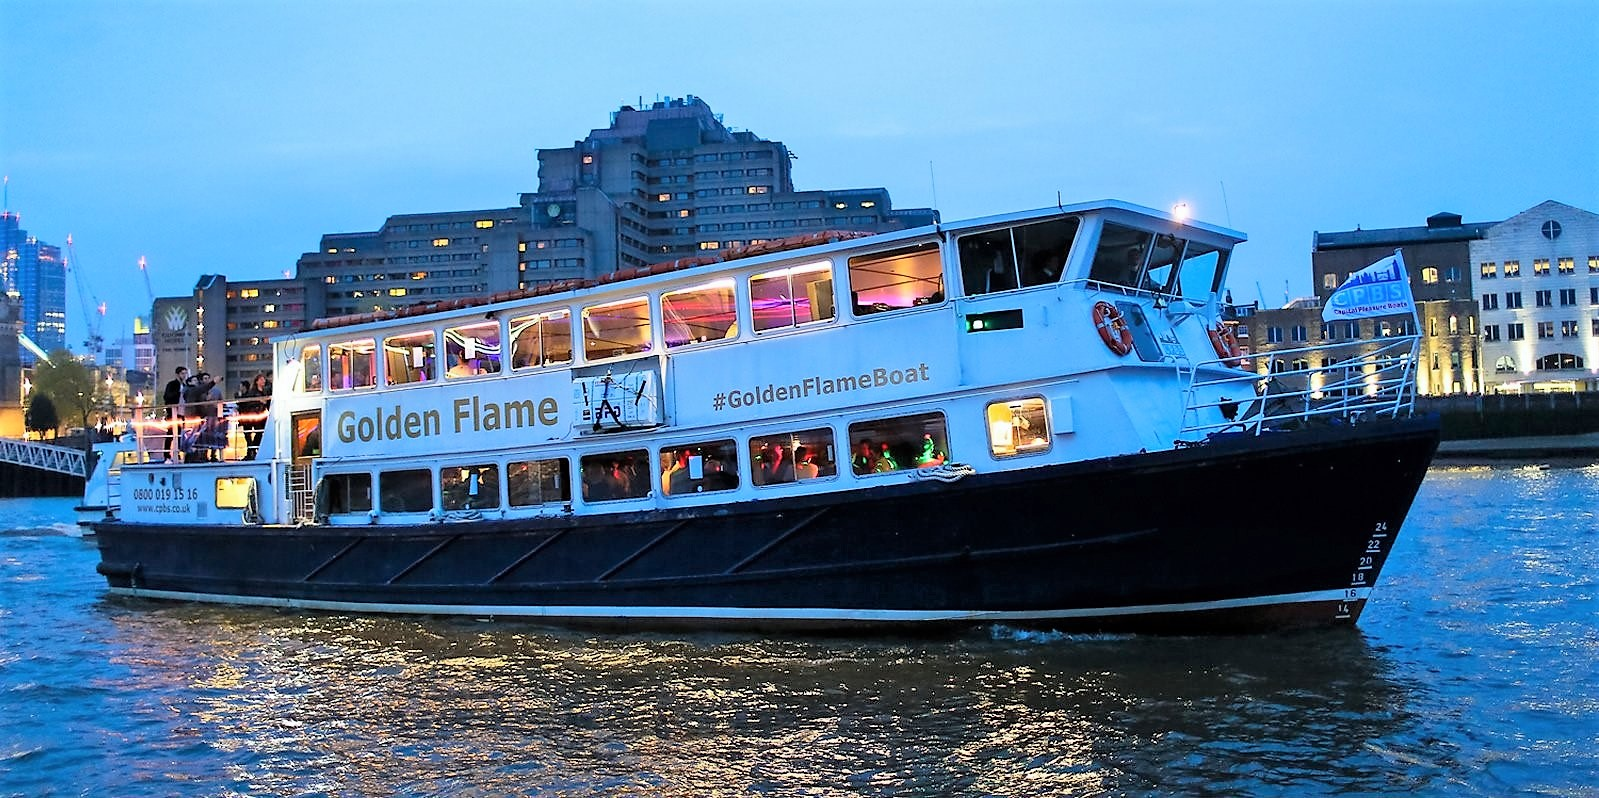 Big-fleet-of-London-party-boats-used-for-the-Thames-party-cruise